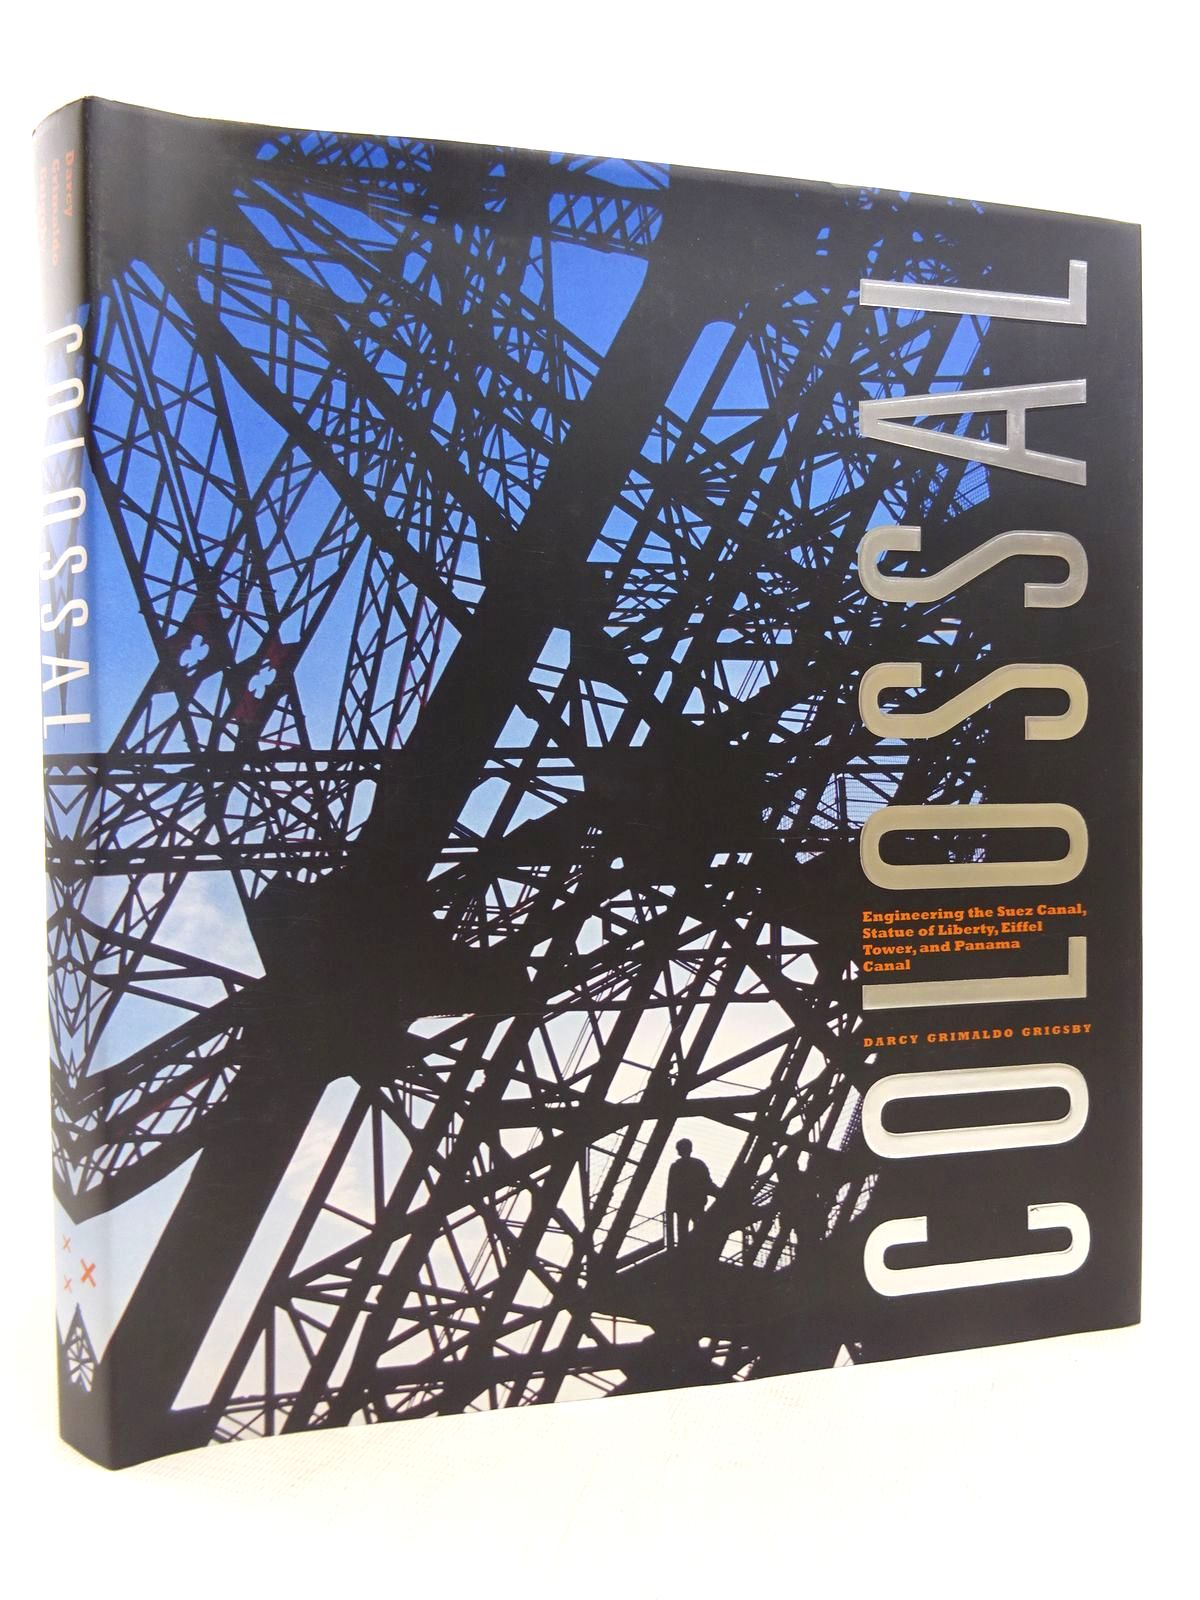 Photo of COLOSSAL: ENGINEERING THE SUEZ CANAL, STATUE OF LIBERTY, EIFFEL TOWER, AND PANAMA CANAL written by Grigsby, Darcy Grimaldo published by Periscope Publishing (STOCK CODE: 1816865)  for sale by Stella & Rose's Books